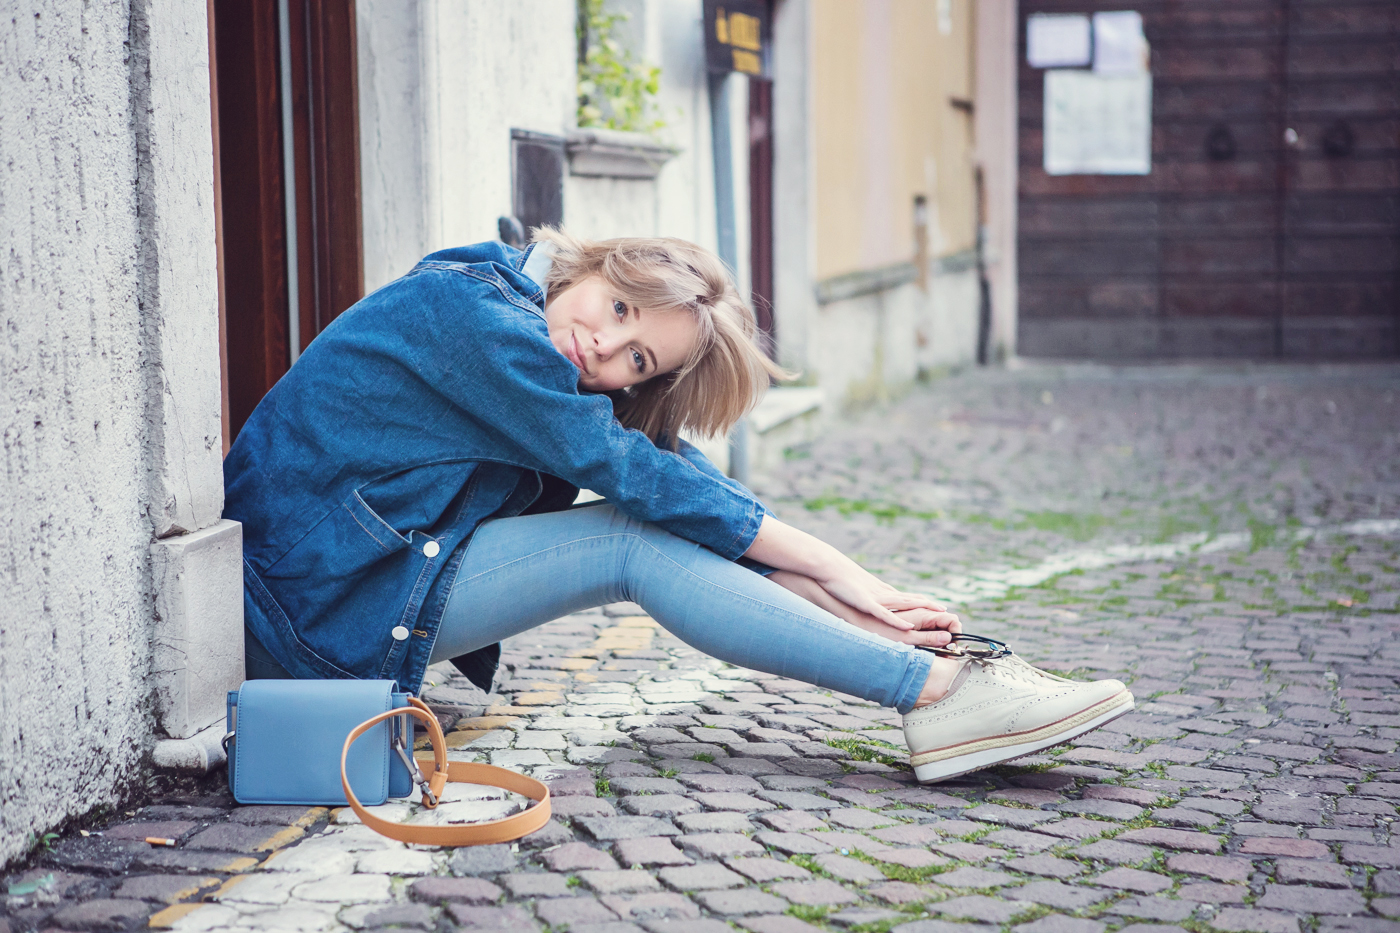 darya kamalova from thecablook com on the vintage flea market in lonato in italy wearing and other stories bag, dr.denim jeans and pollini flatform brogues-38